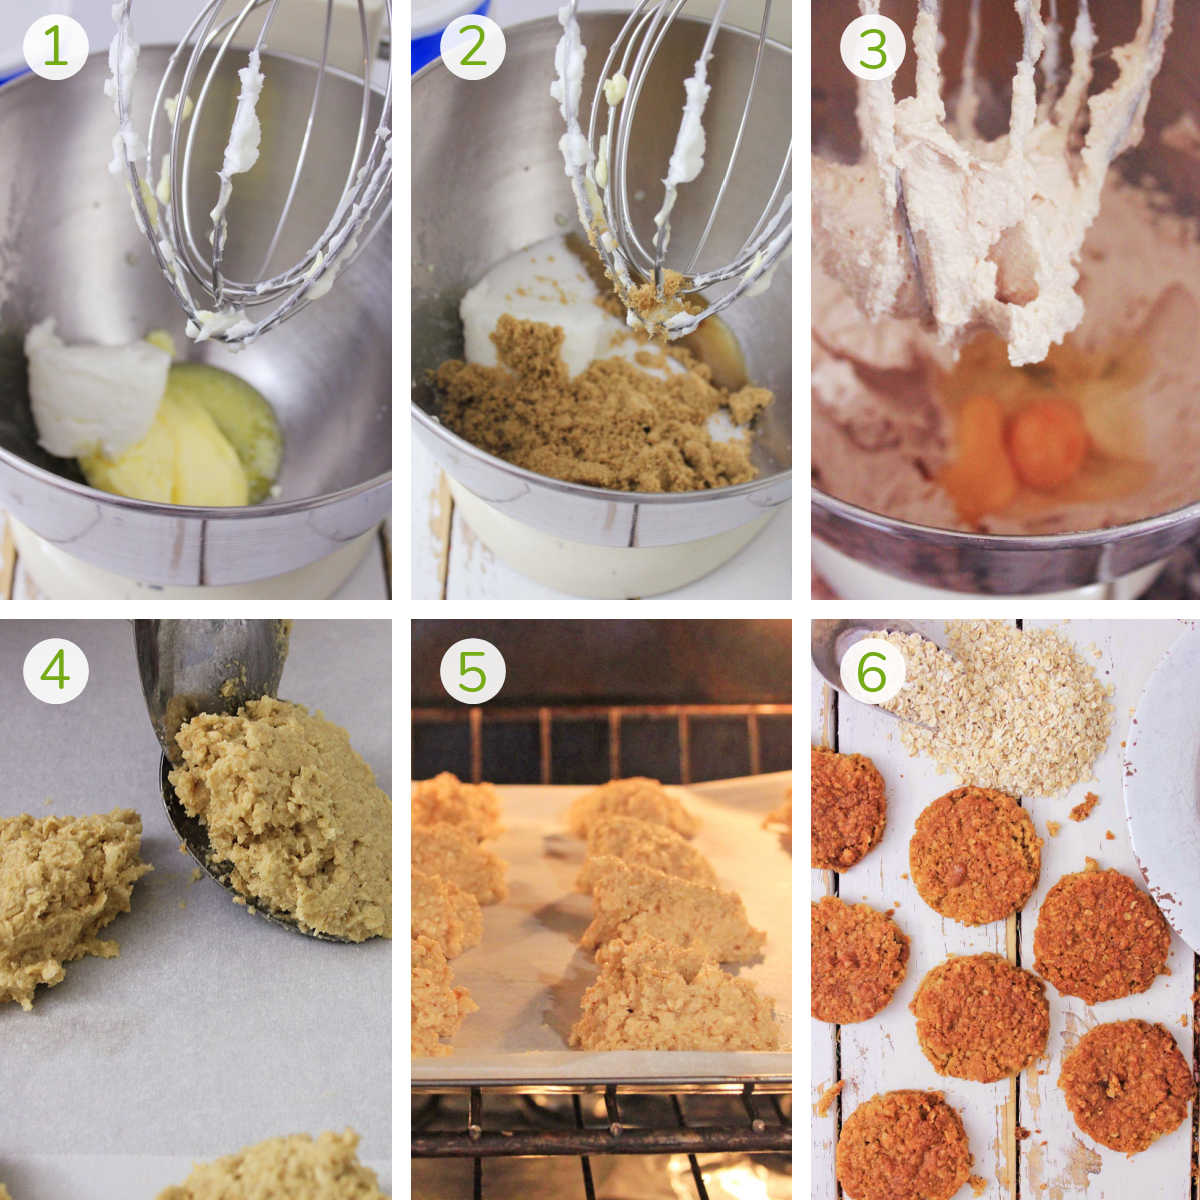 six process photos showing mixing all of the ingredients, forming the dough into cookies, baking and serving.